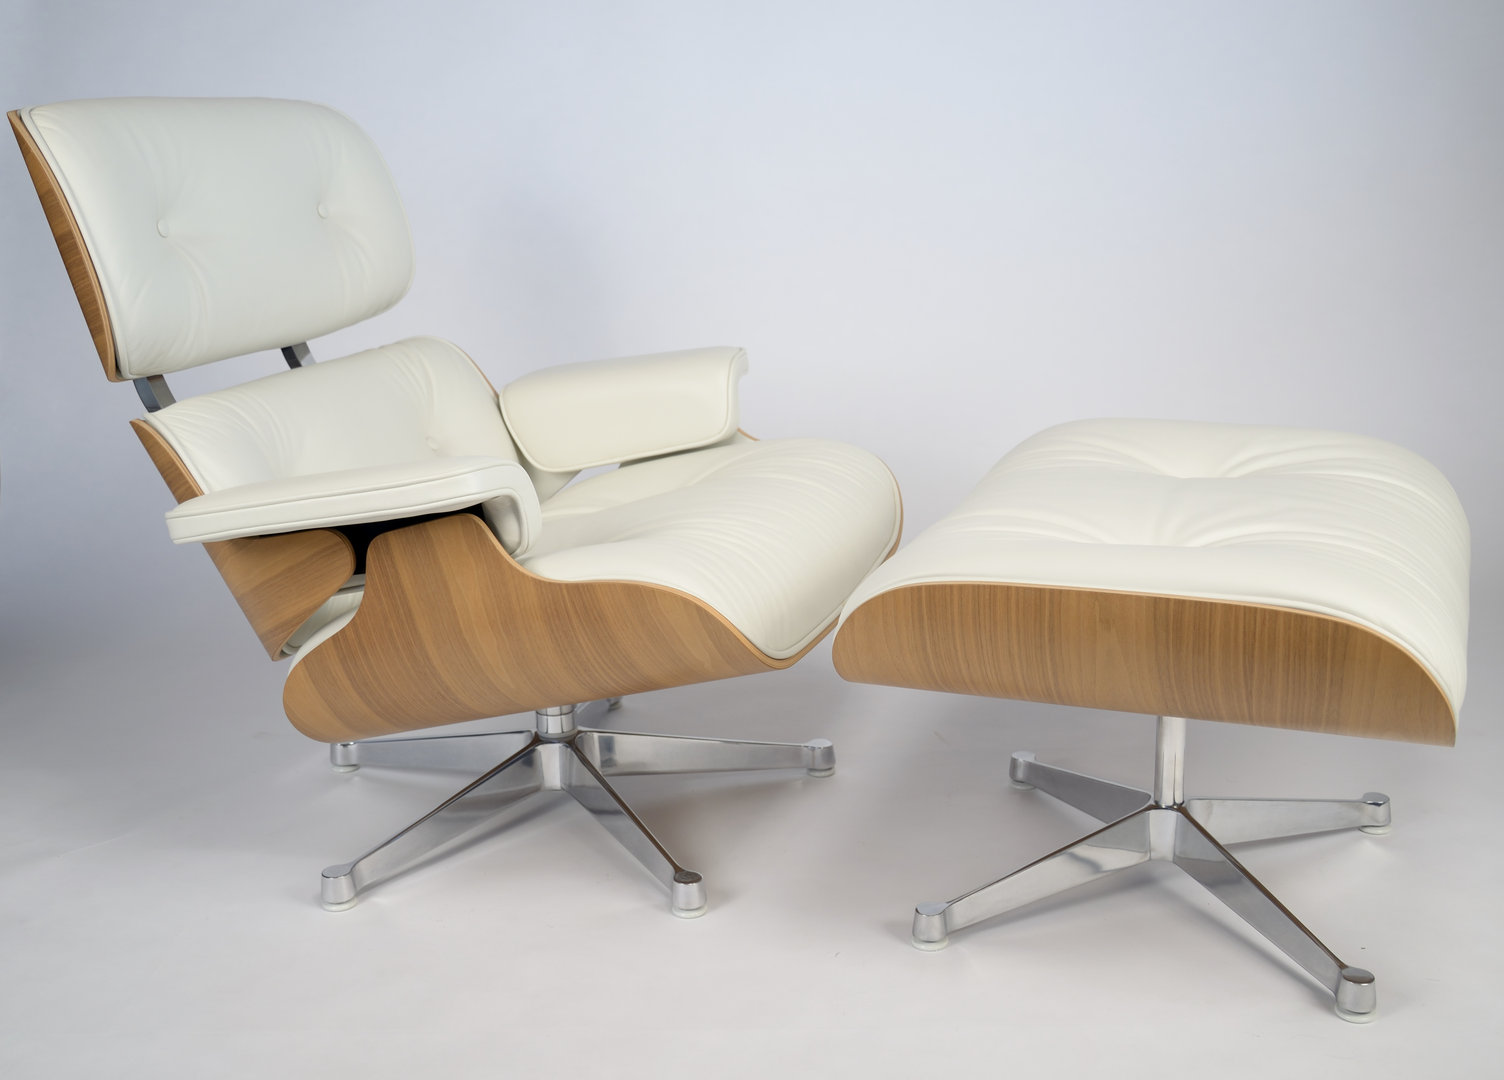 Eames Chair Weiß Vitra Lounge Chair | Sonderedition "|1504|1080|?|6f4645b6822fd4b00c1920855175df8a|False|UNLIKELY|0.32081863284111023